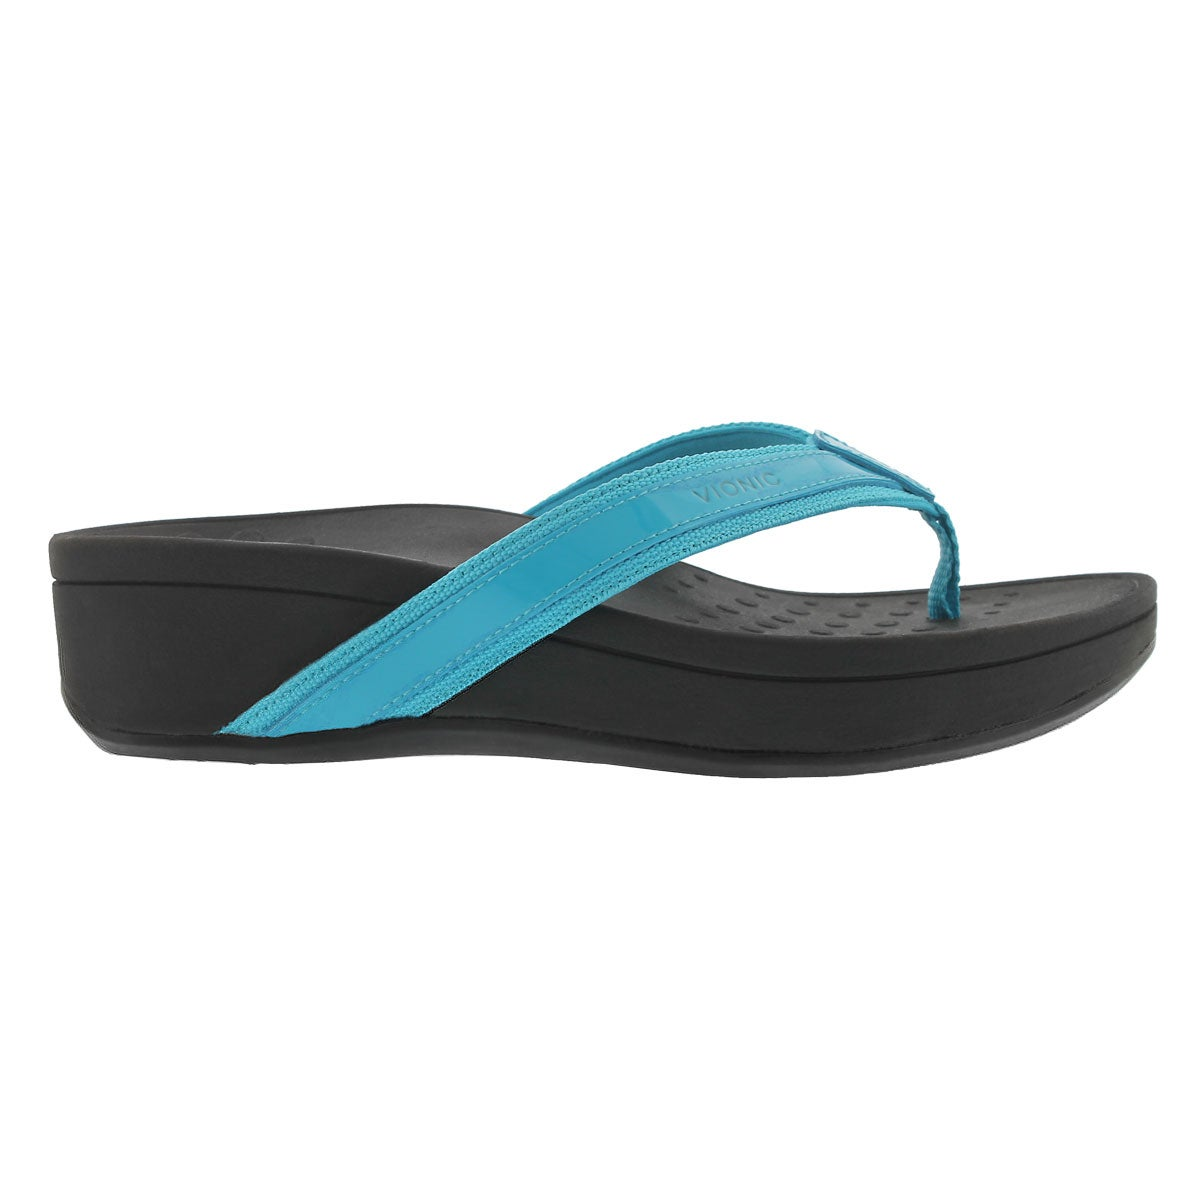 Lds High Tide turq arch support wdg sndl